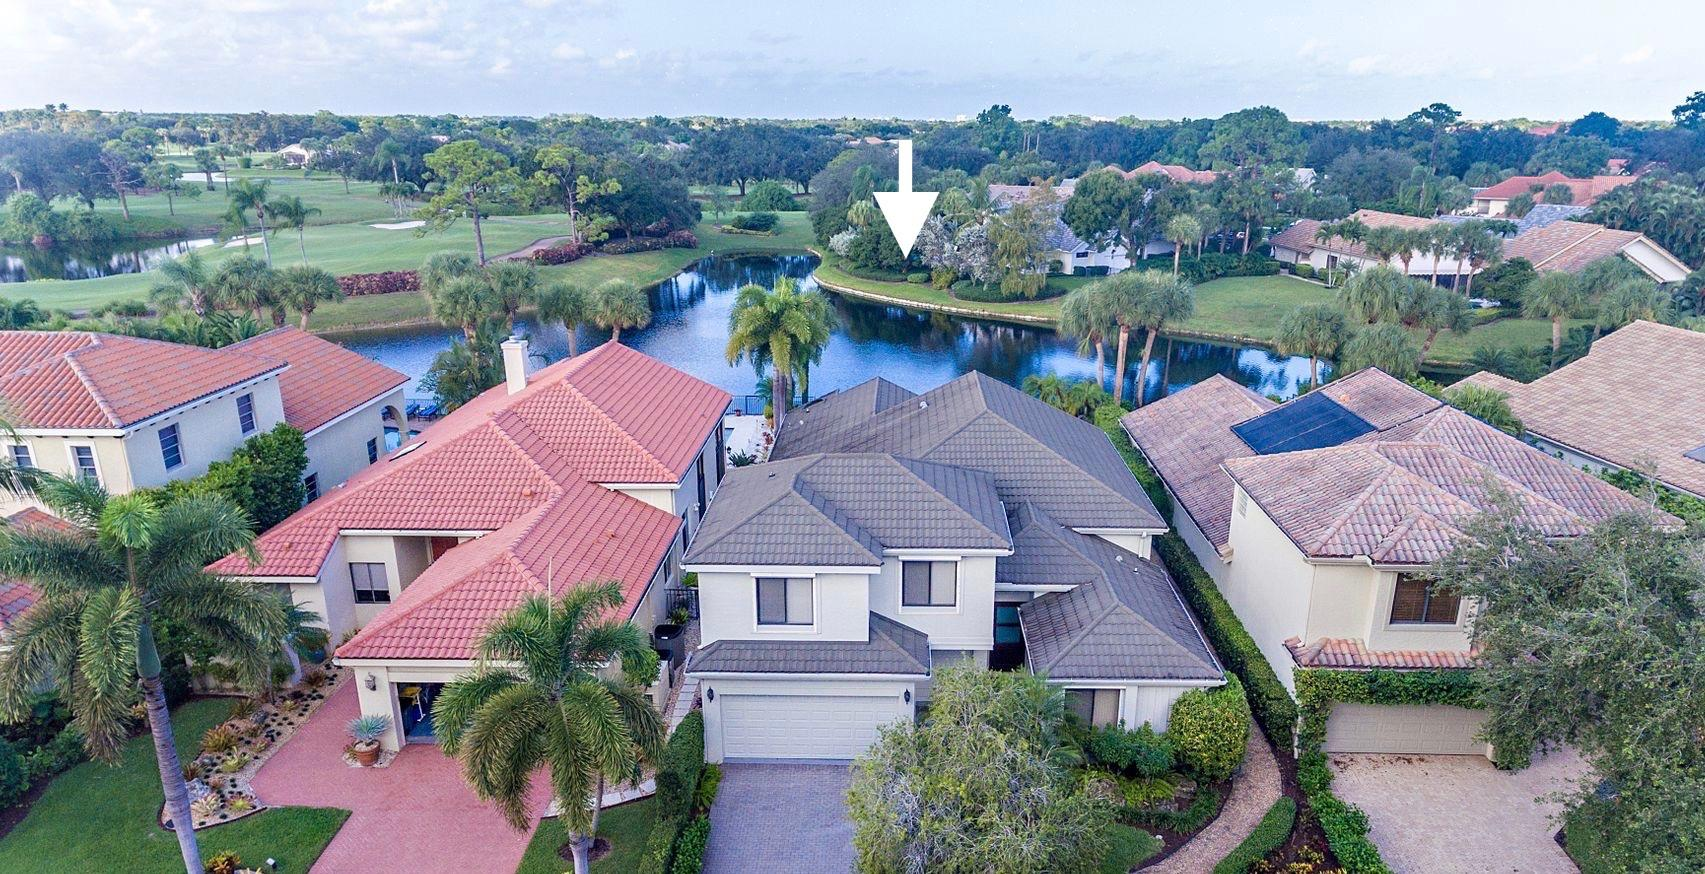 3731 Toulouse Drive, Palm Beach Gardens, Florida 33410, 4 Bedrooms Bedrooms, ,4.1 BathroomsBathrooms,A,Single family,Toulouse,RX-10481635